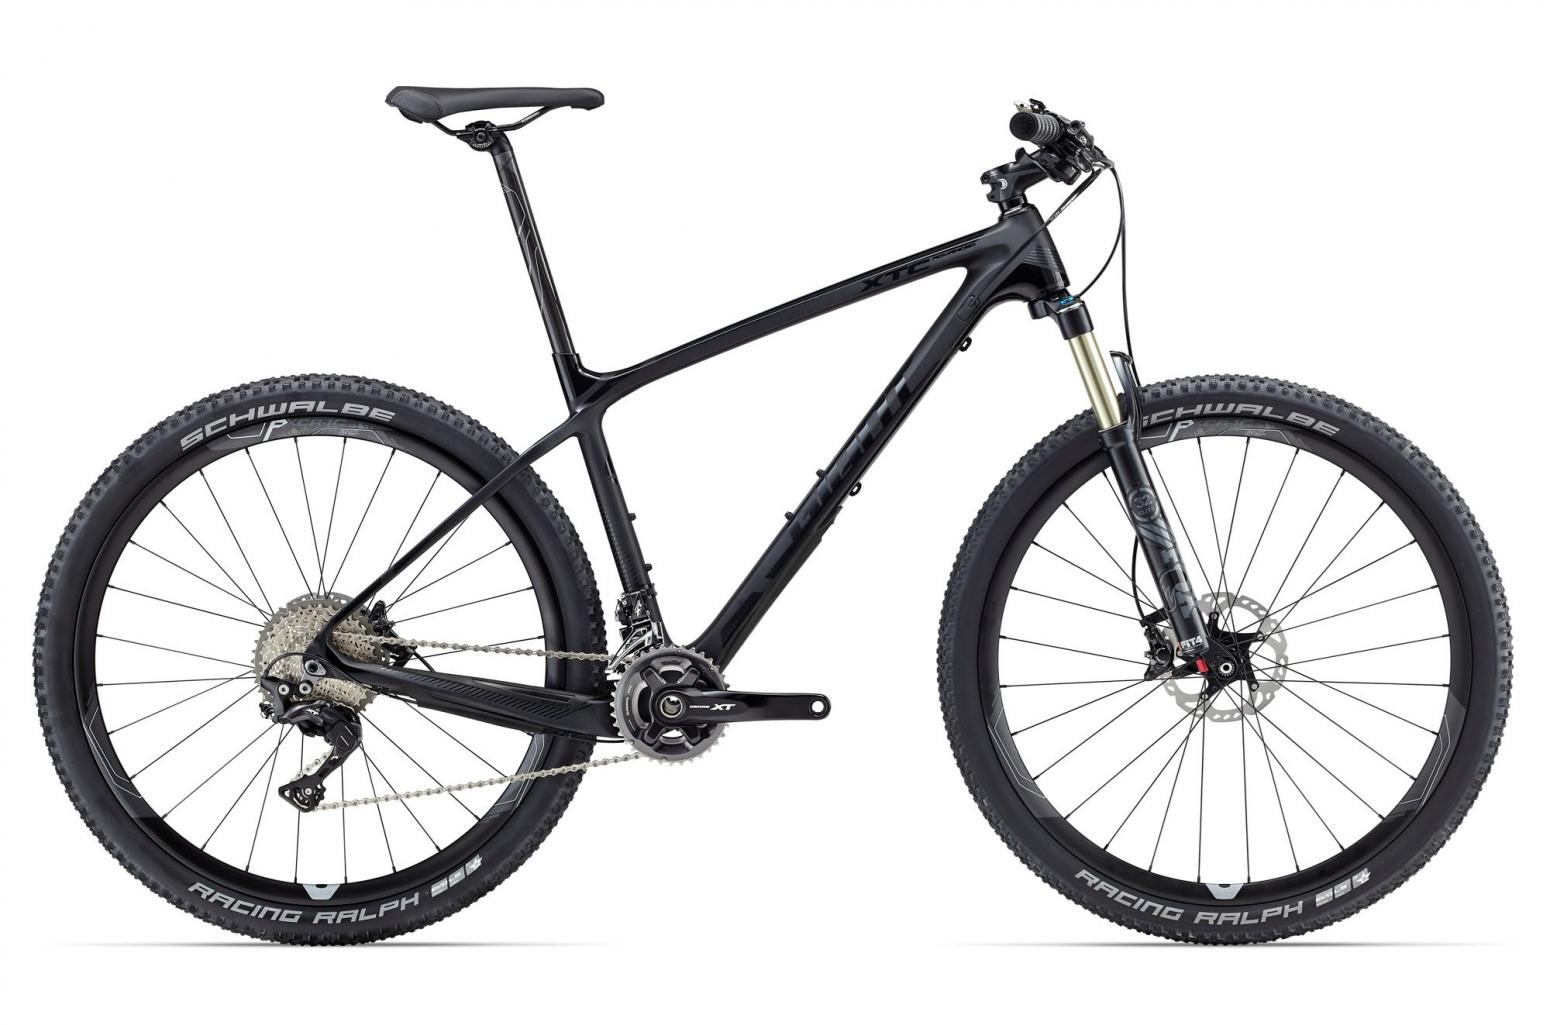 Giant MTB Trail/Race XtC Advanced 27.5 1 2016